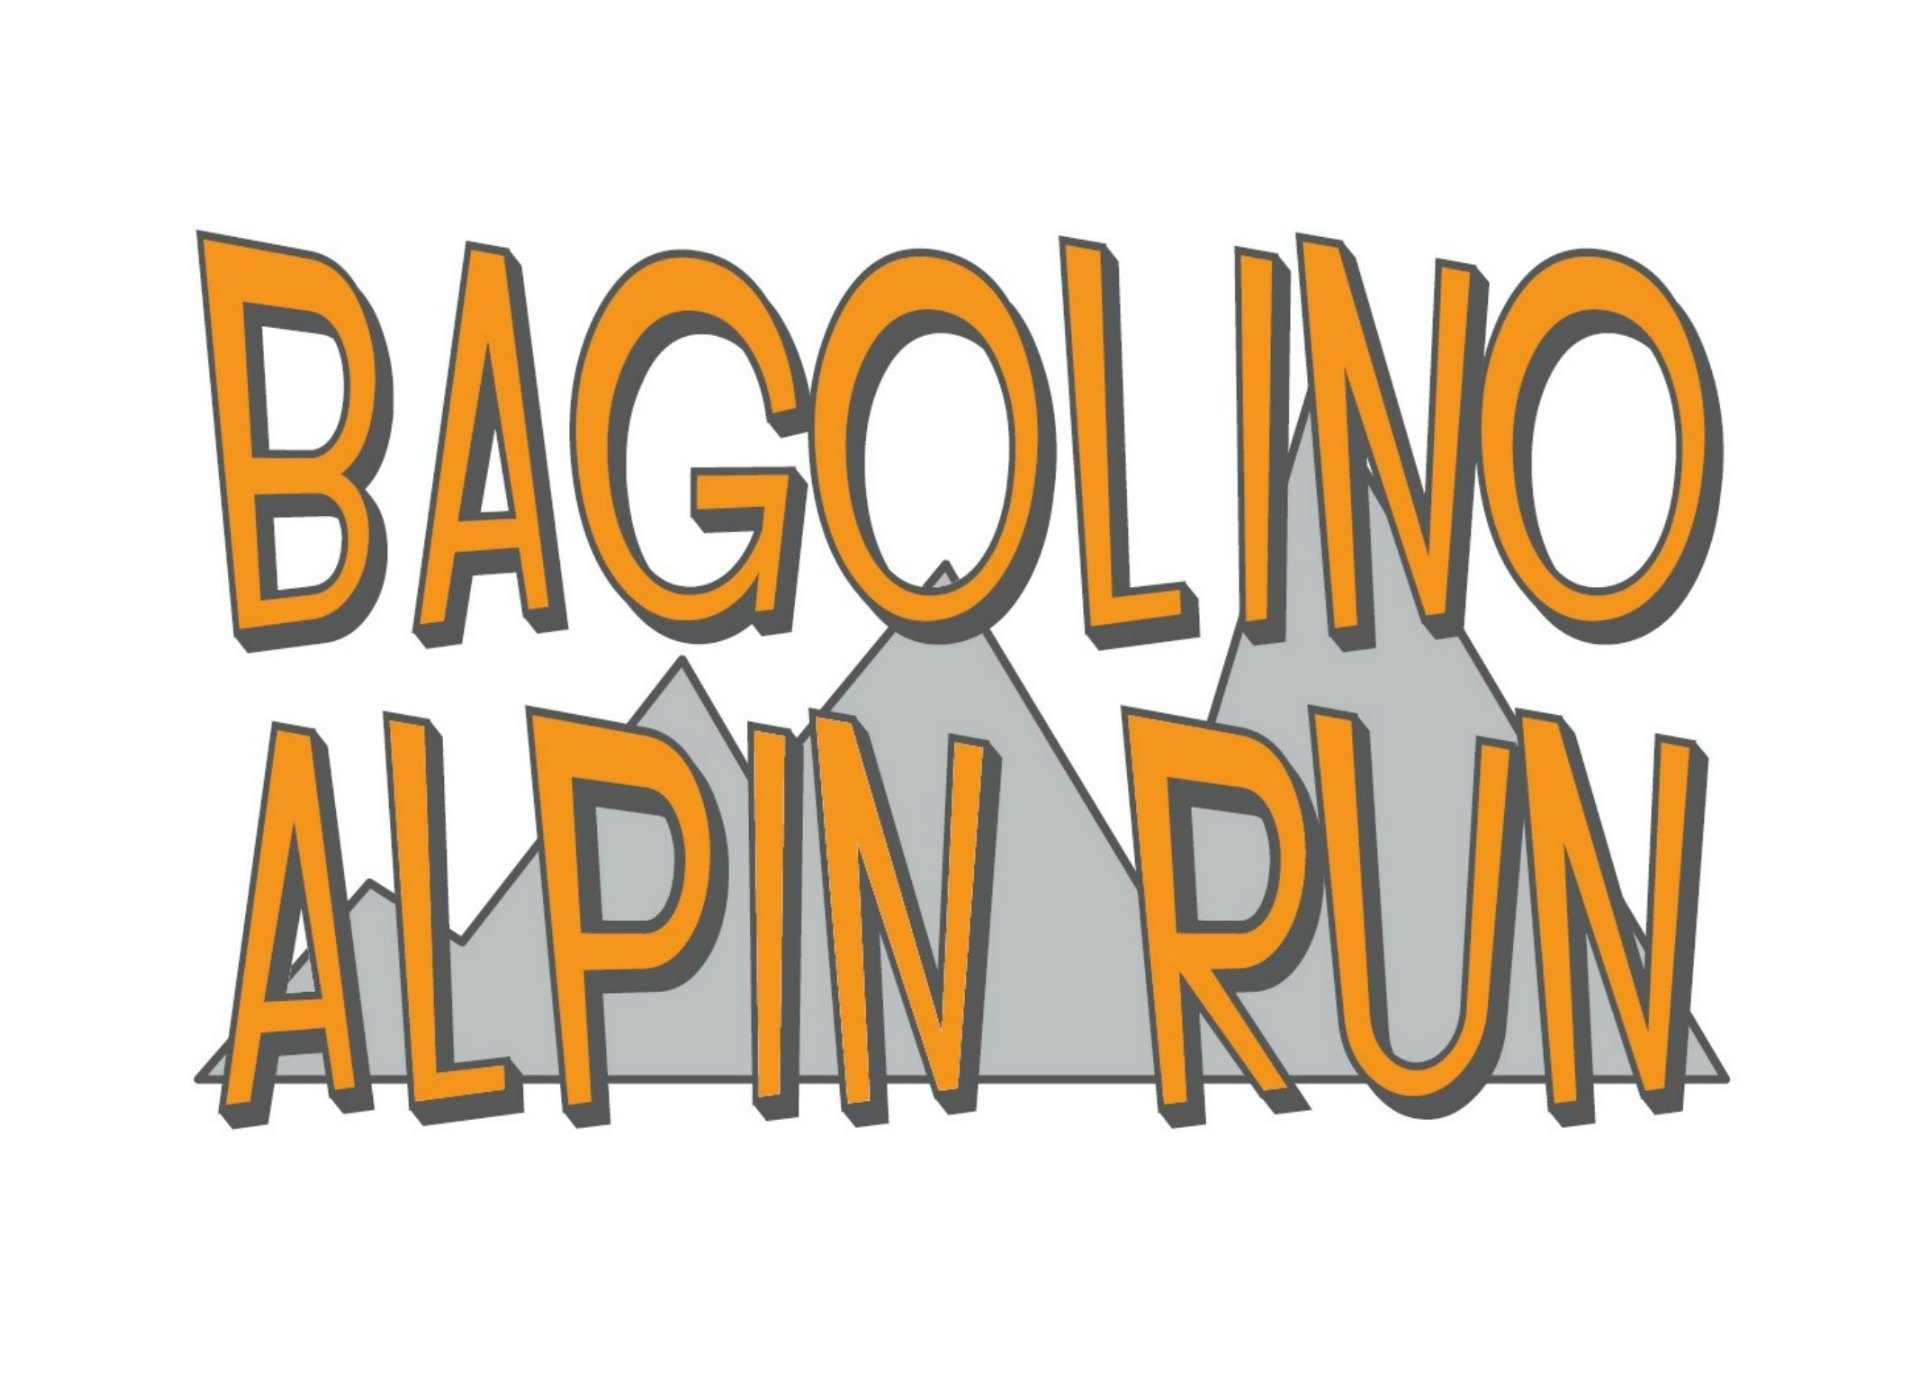 Bagolino Alpin Run - July 23, 2017